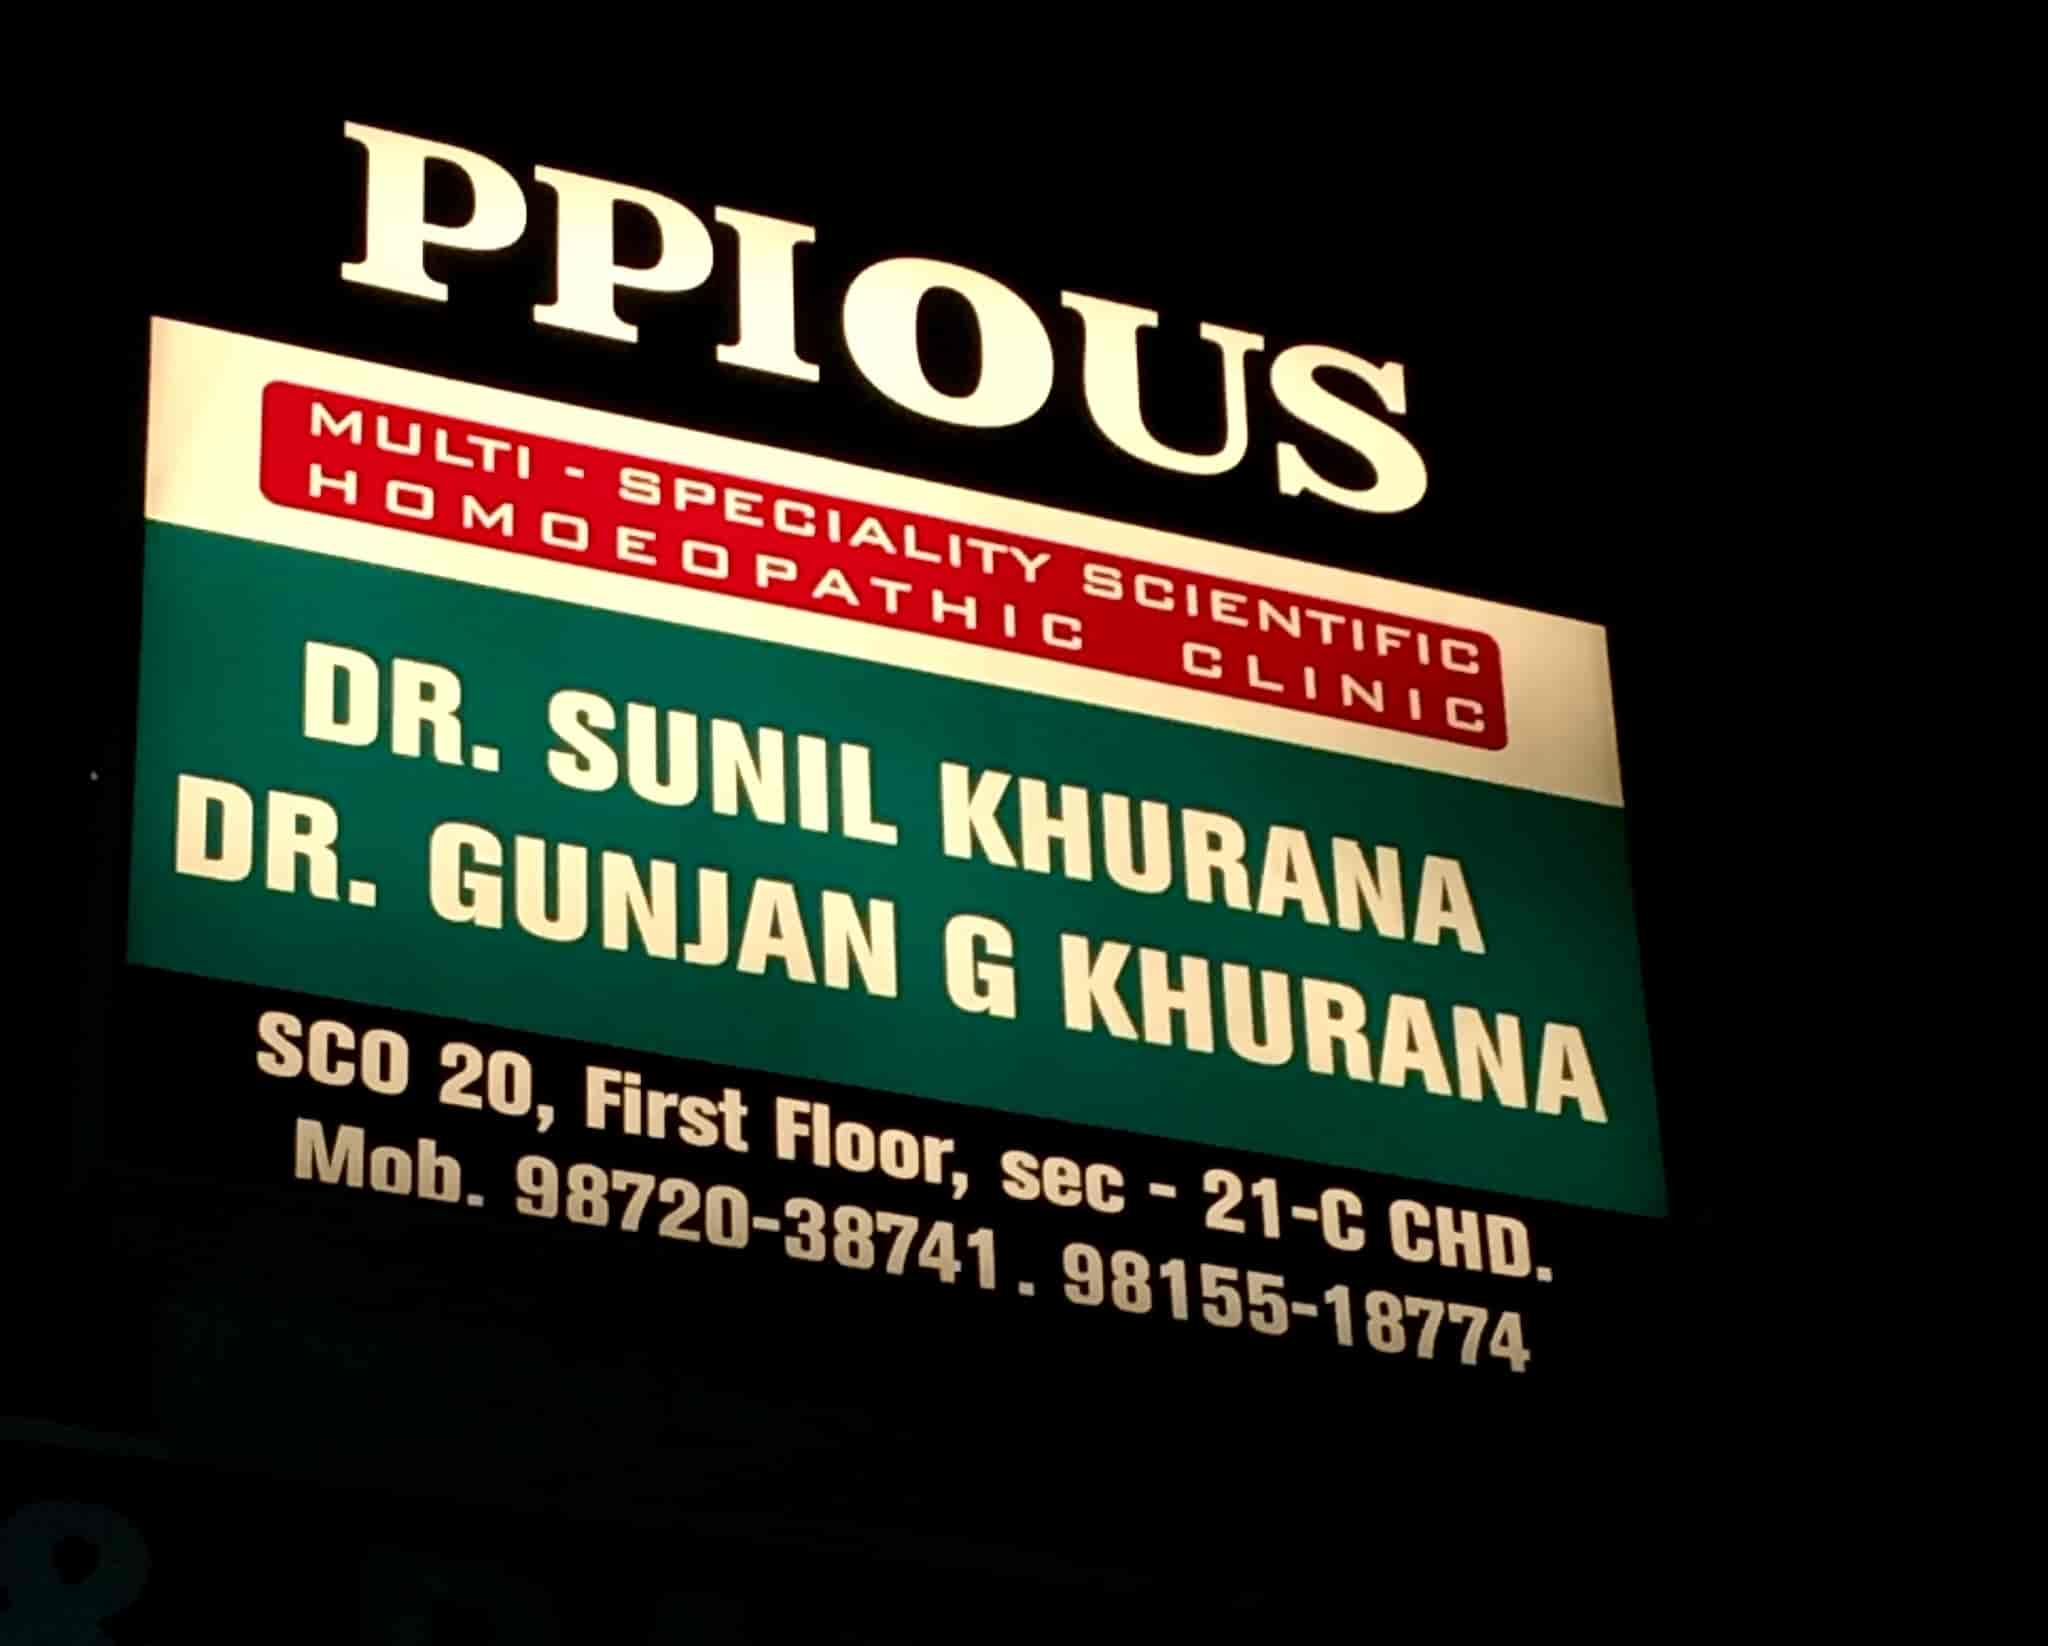 Ppious Homoeopathic Clinic, Chandigarh Sector 21a